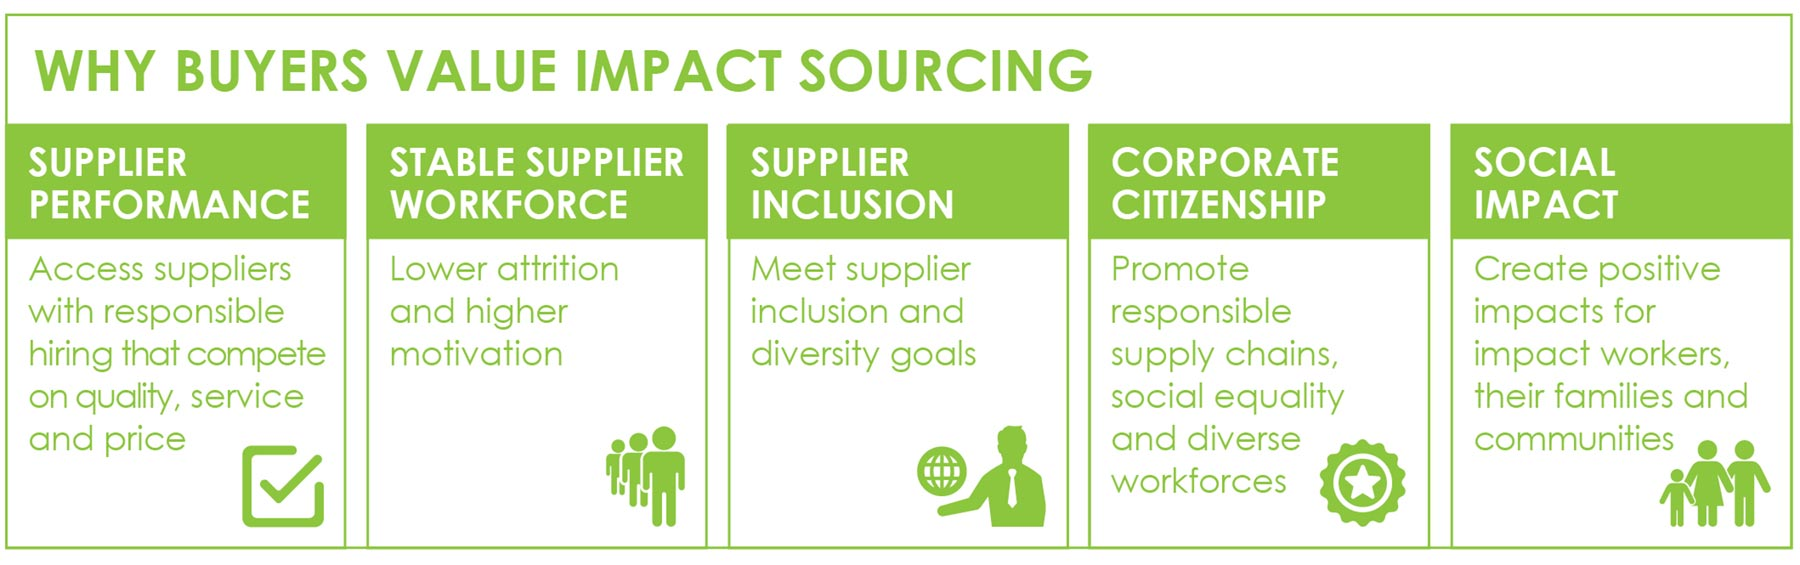 Impact Sourcing Infographic, part 2